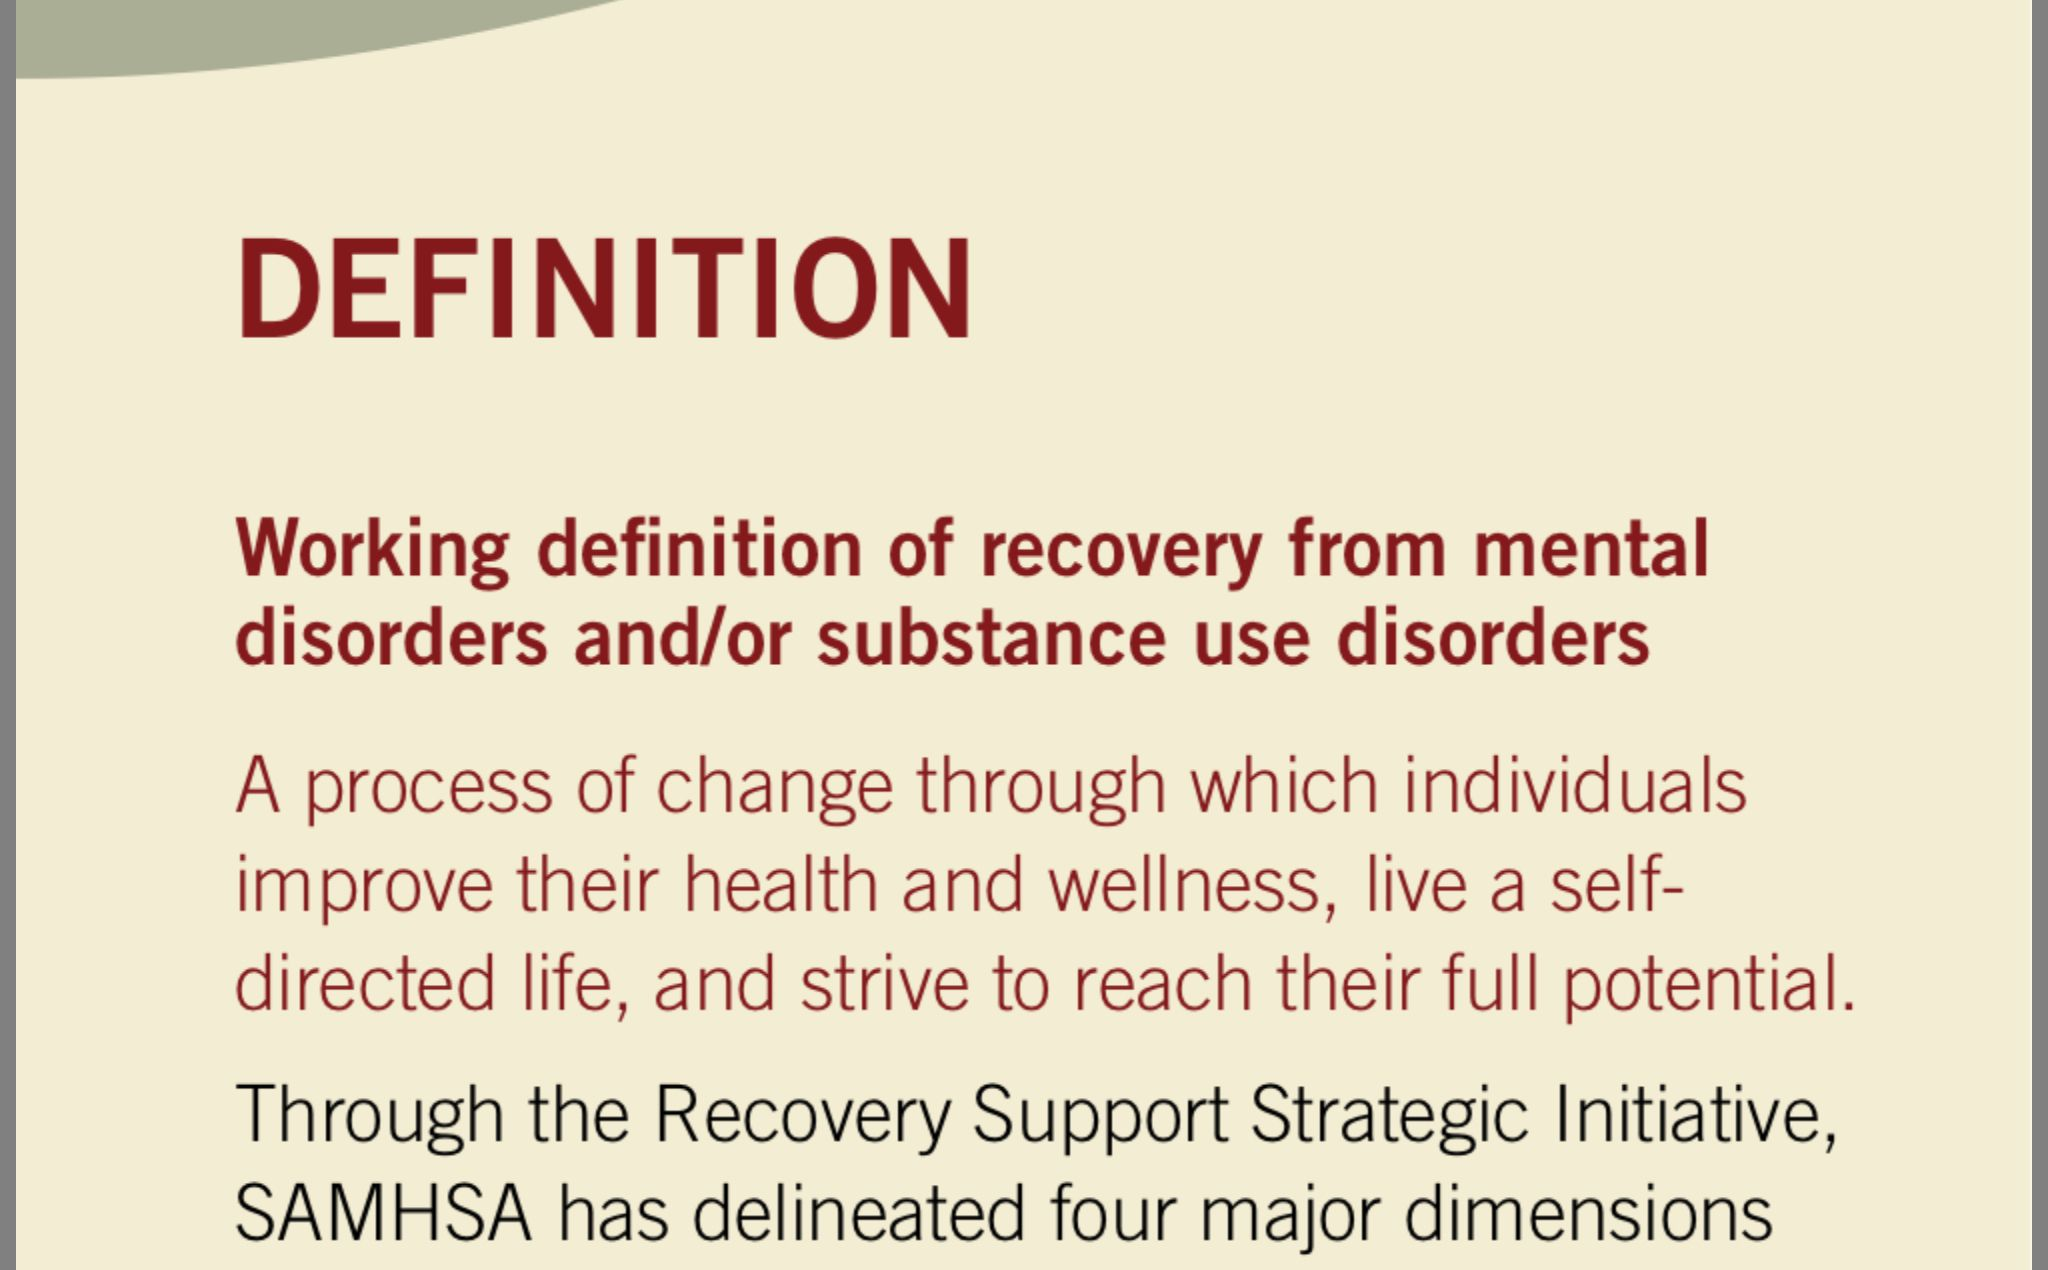 Pin By Joanie Hedrick On Work Recovery Support Health And Wellness Mental Disorders